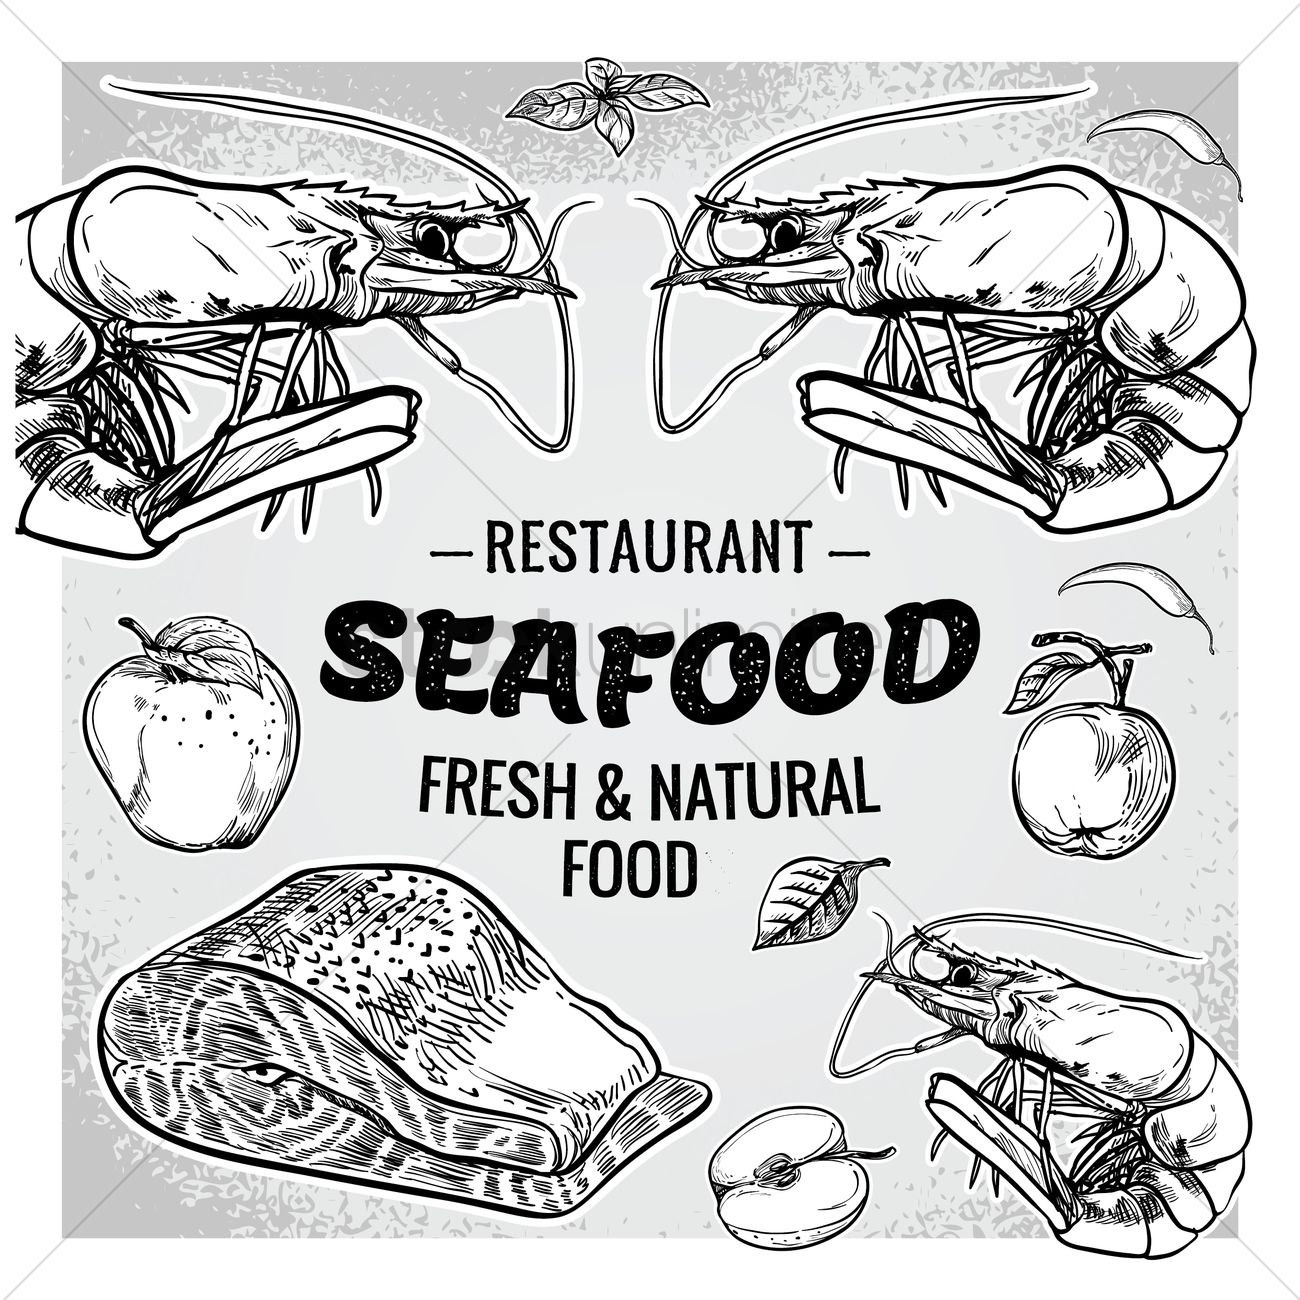 1300x1300 Seafood Restaurant With Fresh And Natural Food Vector Image